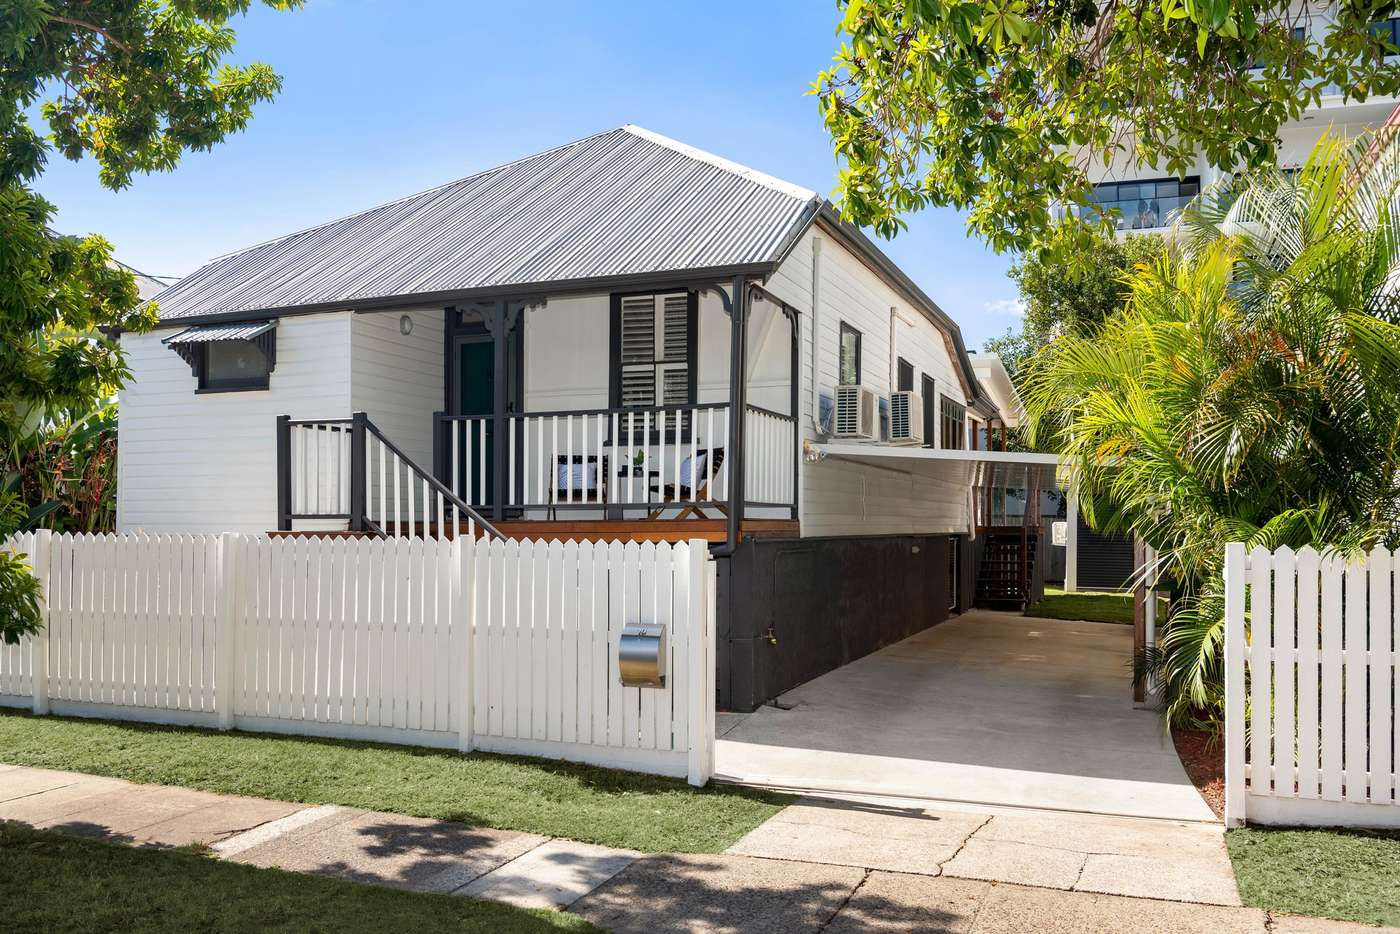 Main view of Homely house listing, 10 Ellis Street, Greenslopes QLD 4120